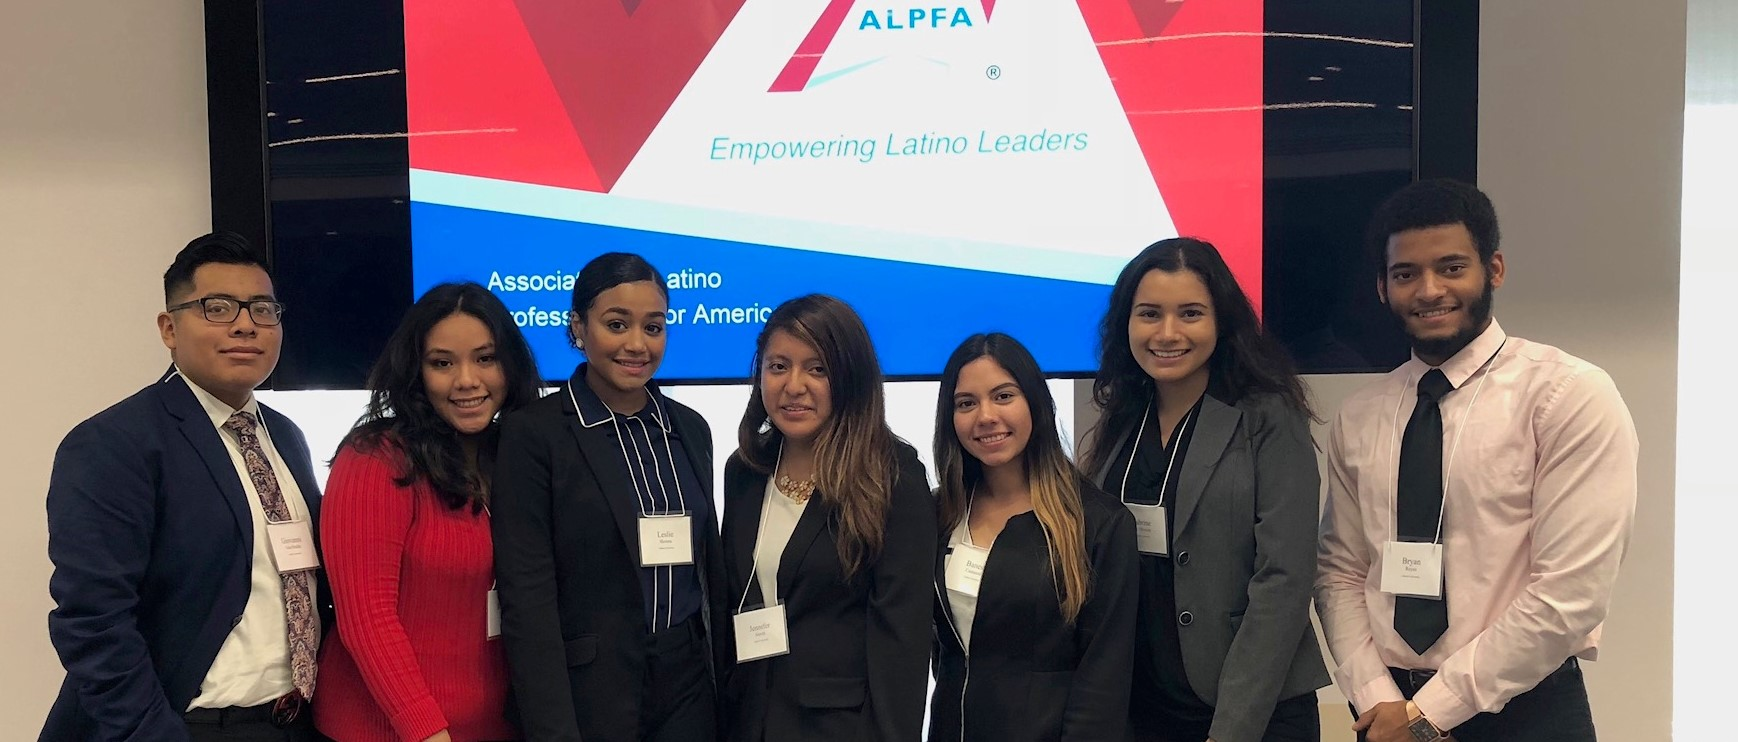 Banesa Castaneda (third from right) and the Cabrini University chapter of the Association of Latino Professionals for America (ALPFA)